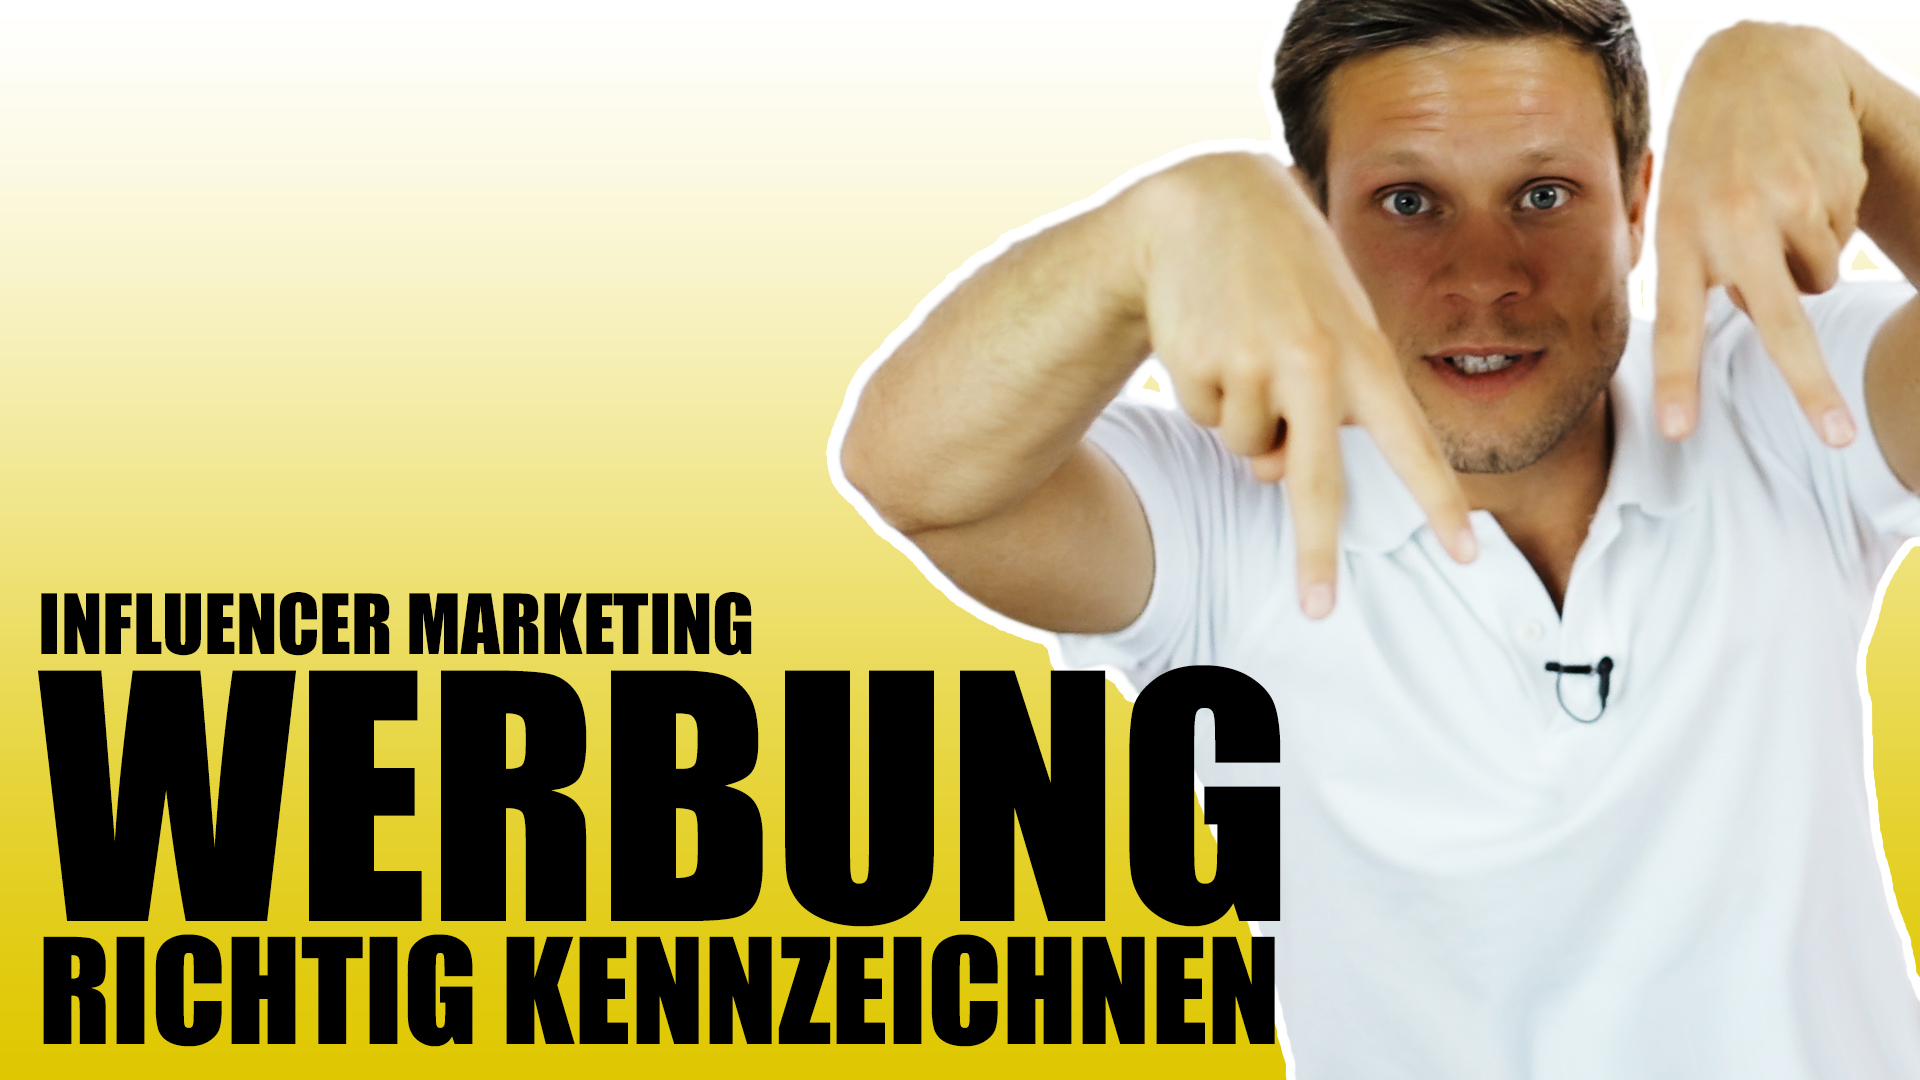 Werbung richtig kennzeichenen - Influencer Marketing - Instagram Facebook - fragdendan